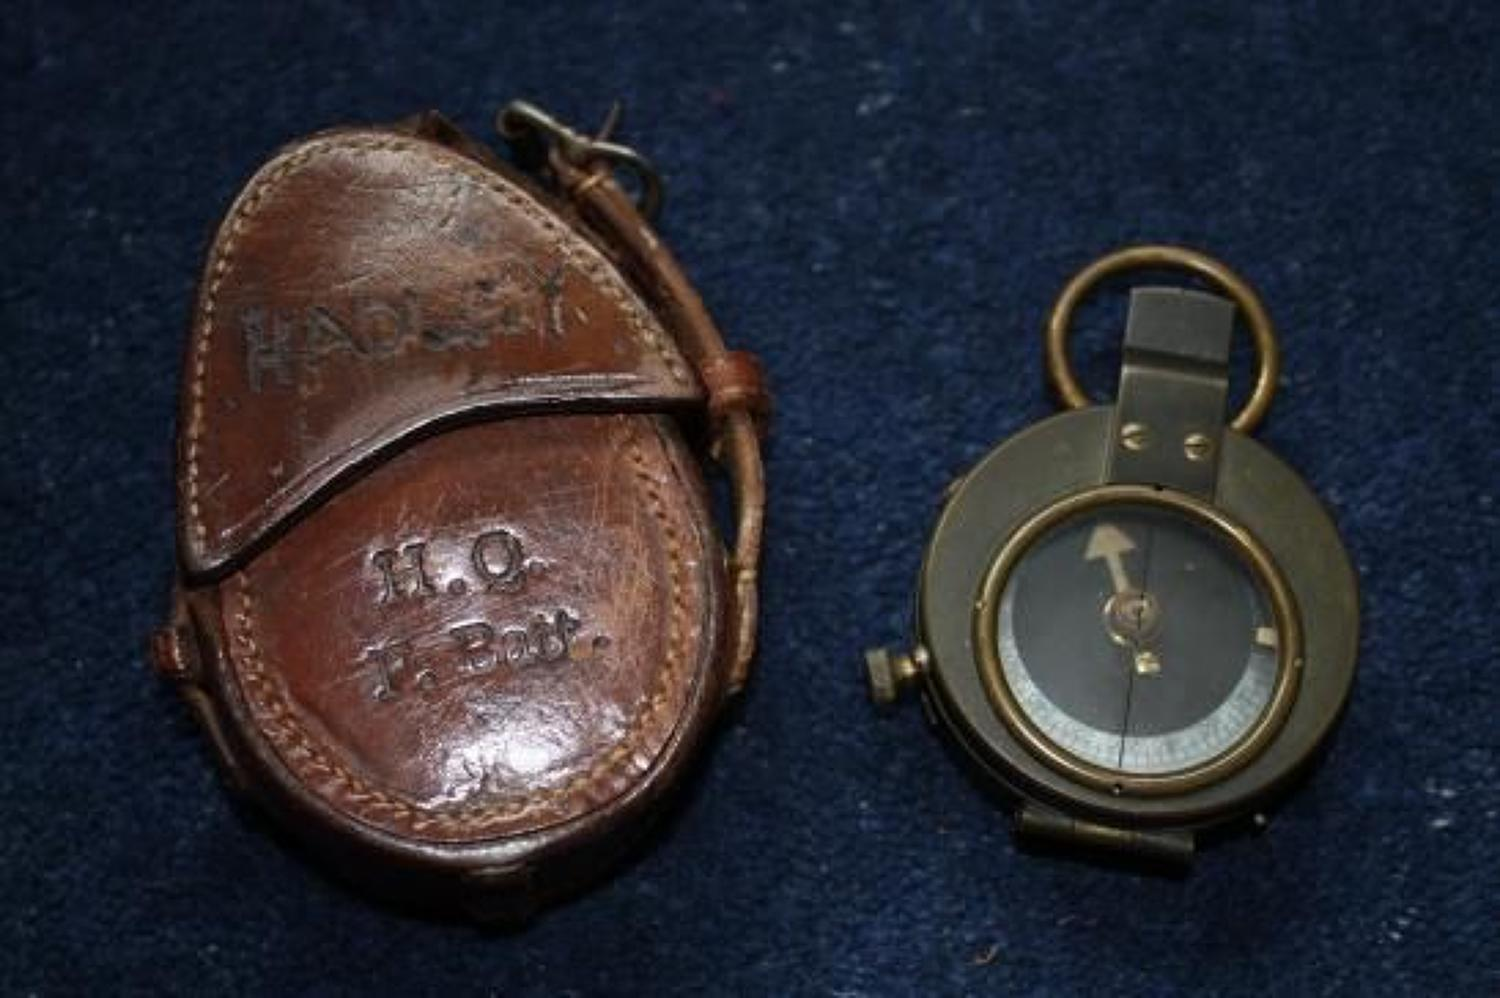 VERNERS PATTERN 1916 NAMED & DATED BRITISH ARMY OFFICERS COMPASS & LEATHER CASE